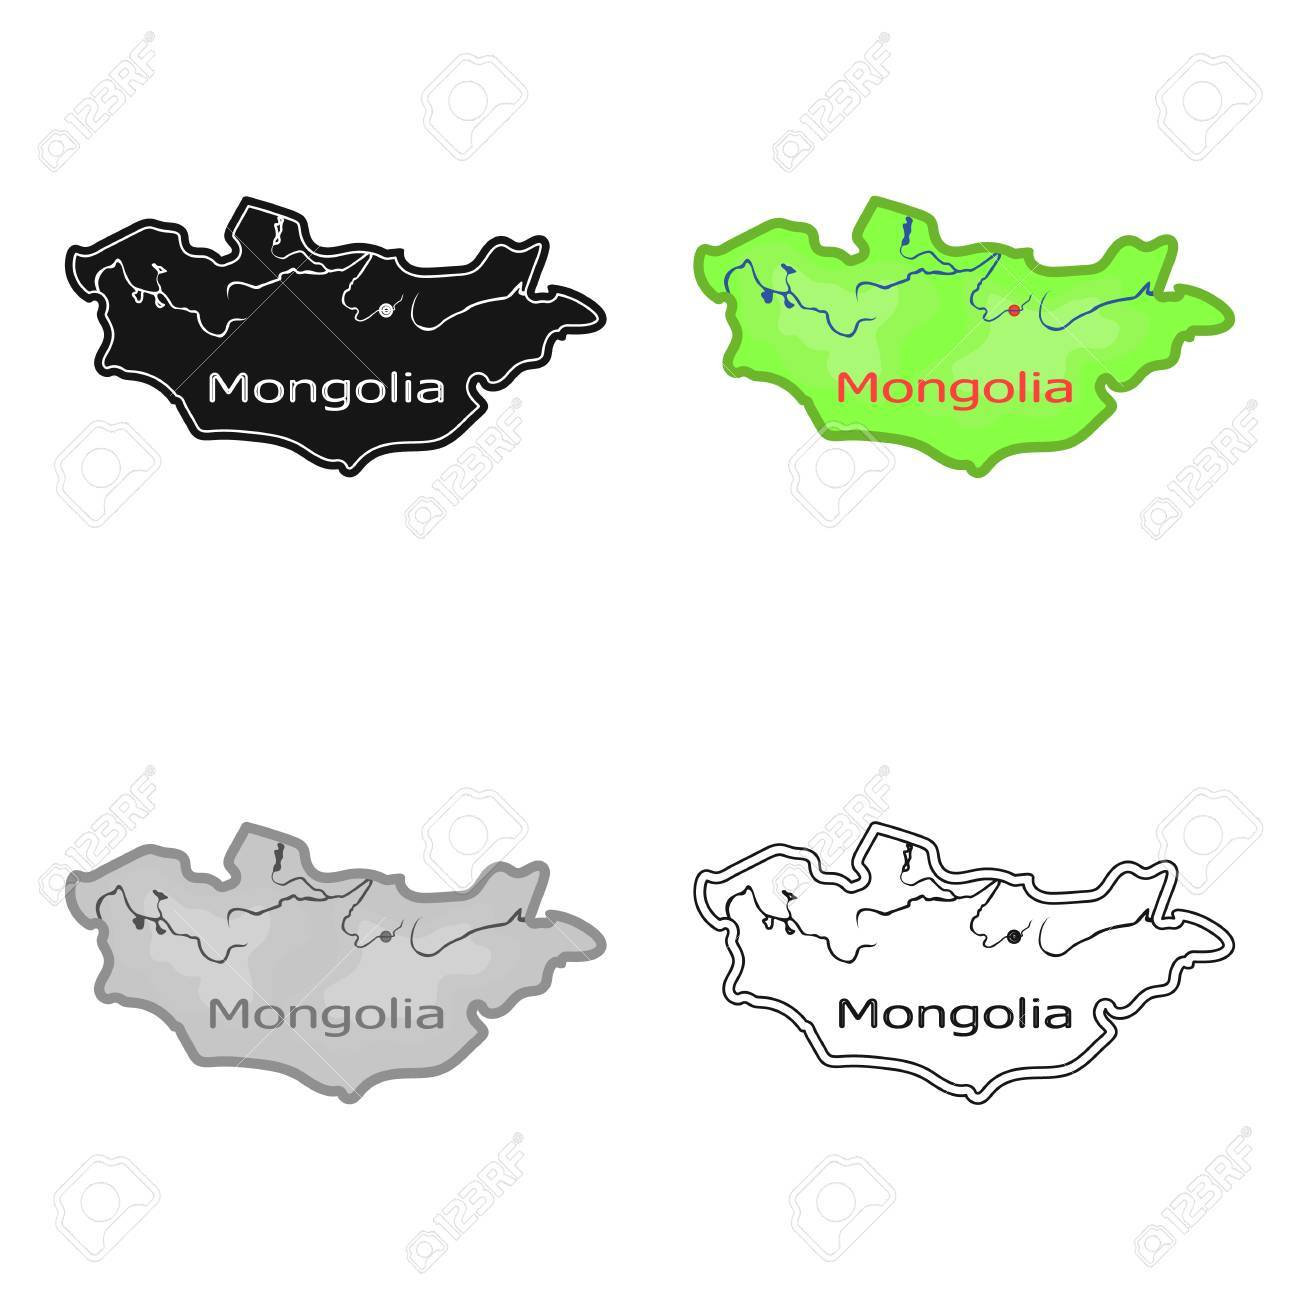 Green map of mongoliangolia on the world mapngolia single green map of mongoliangolia on the world mapngolia single icon in cartoon gumiabroncs Image collections